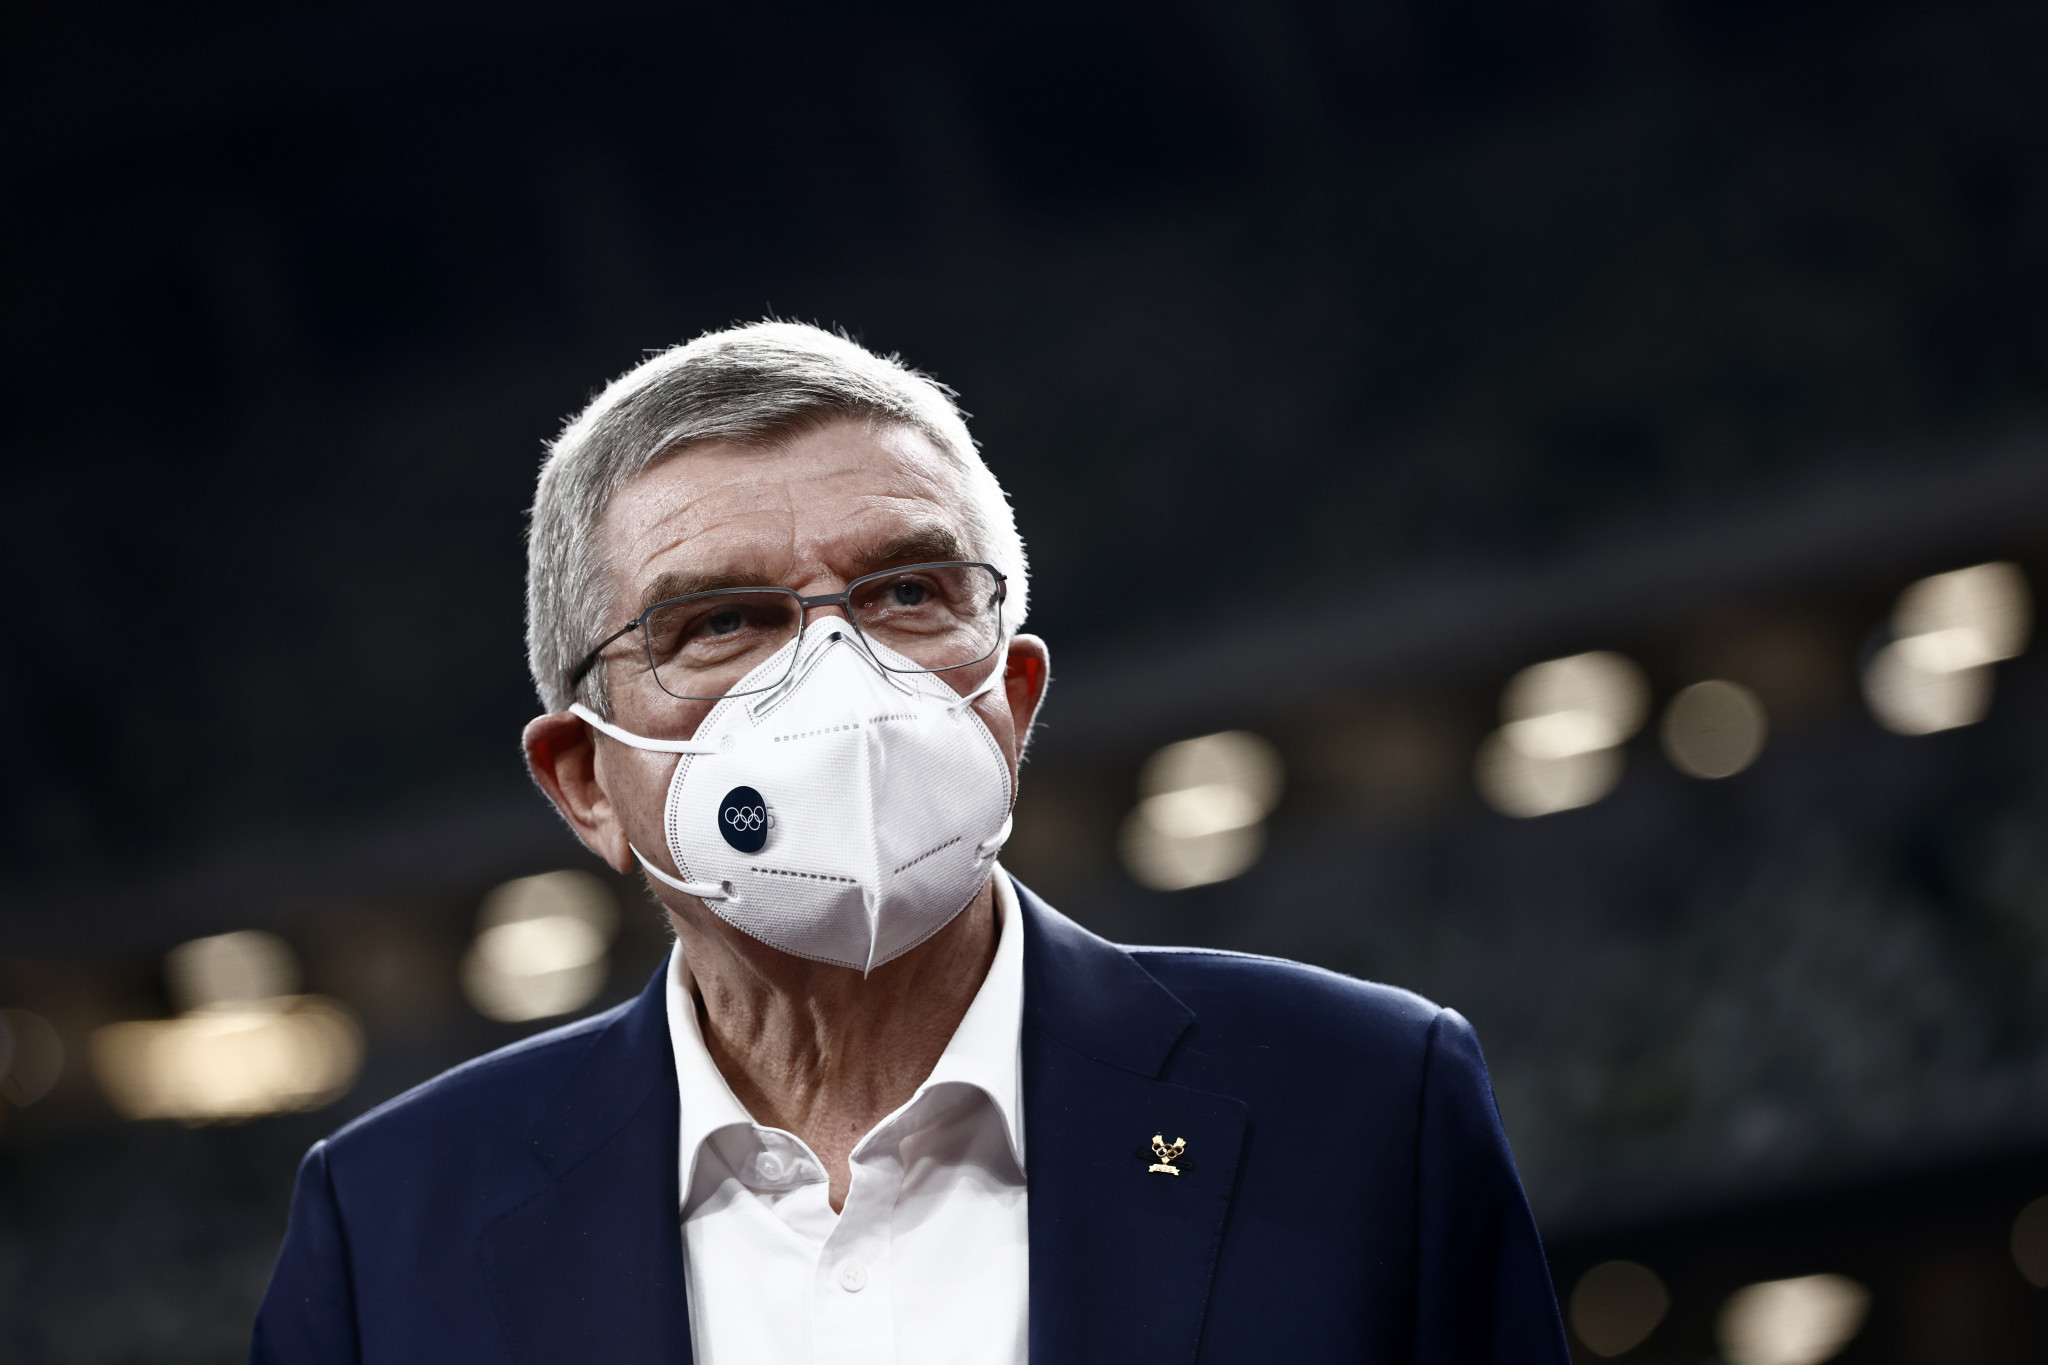 Thomas Bach is set to be re-elected as IOC President unopposed ©Getty Images